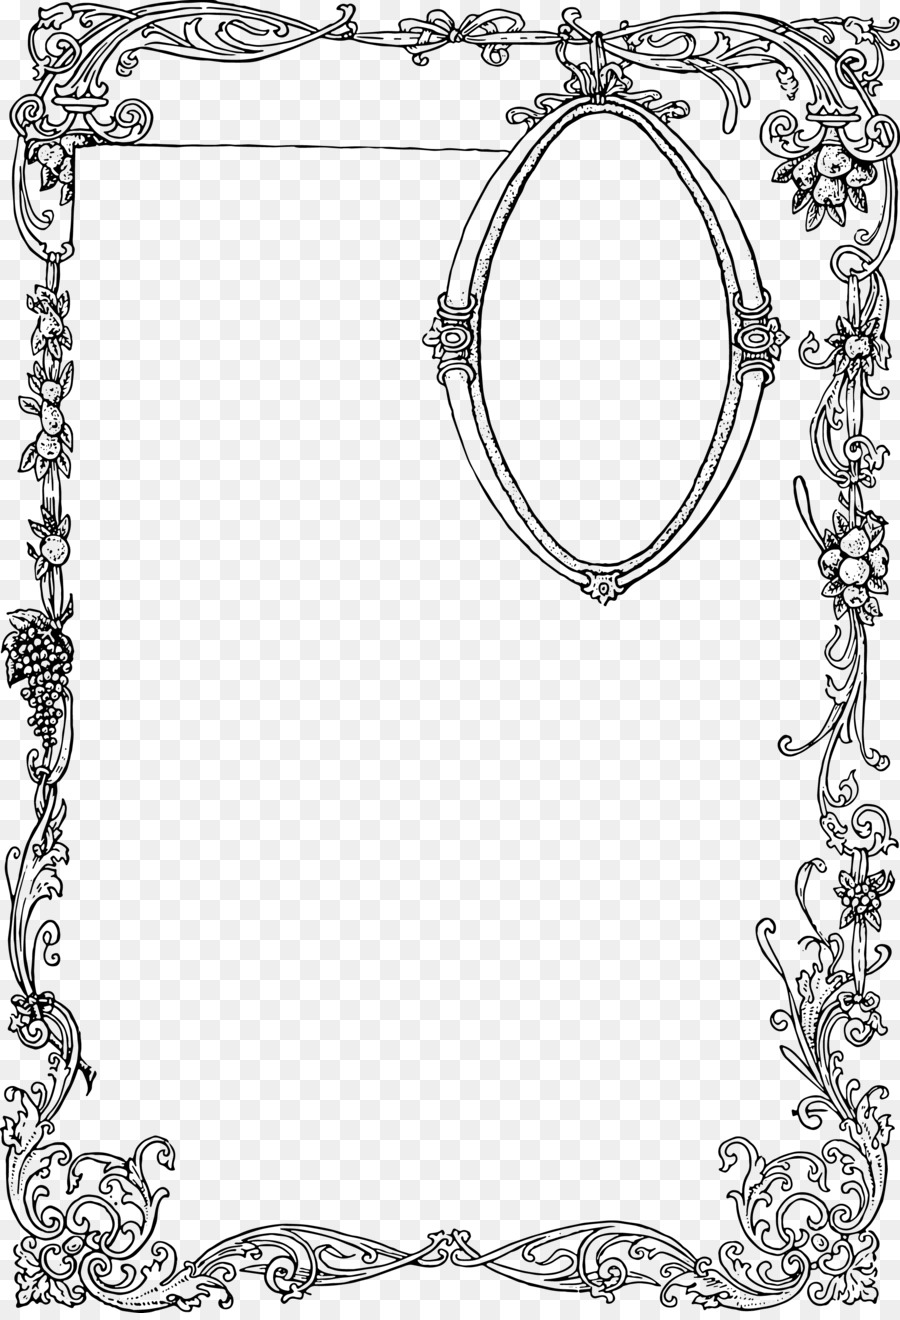 900x1320 Borders And Frames Ornament Picture Frames Clip Art